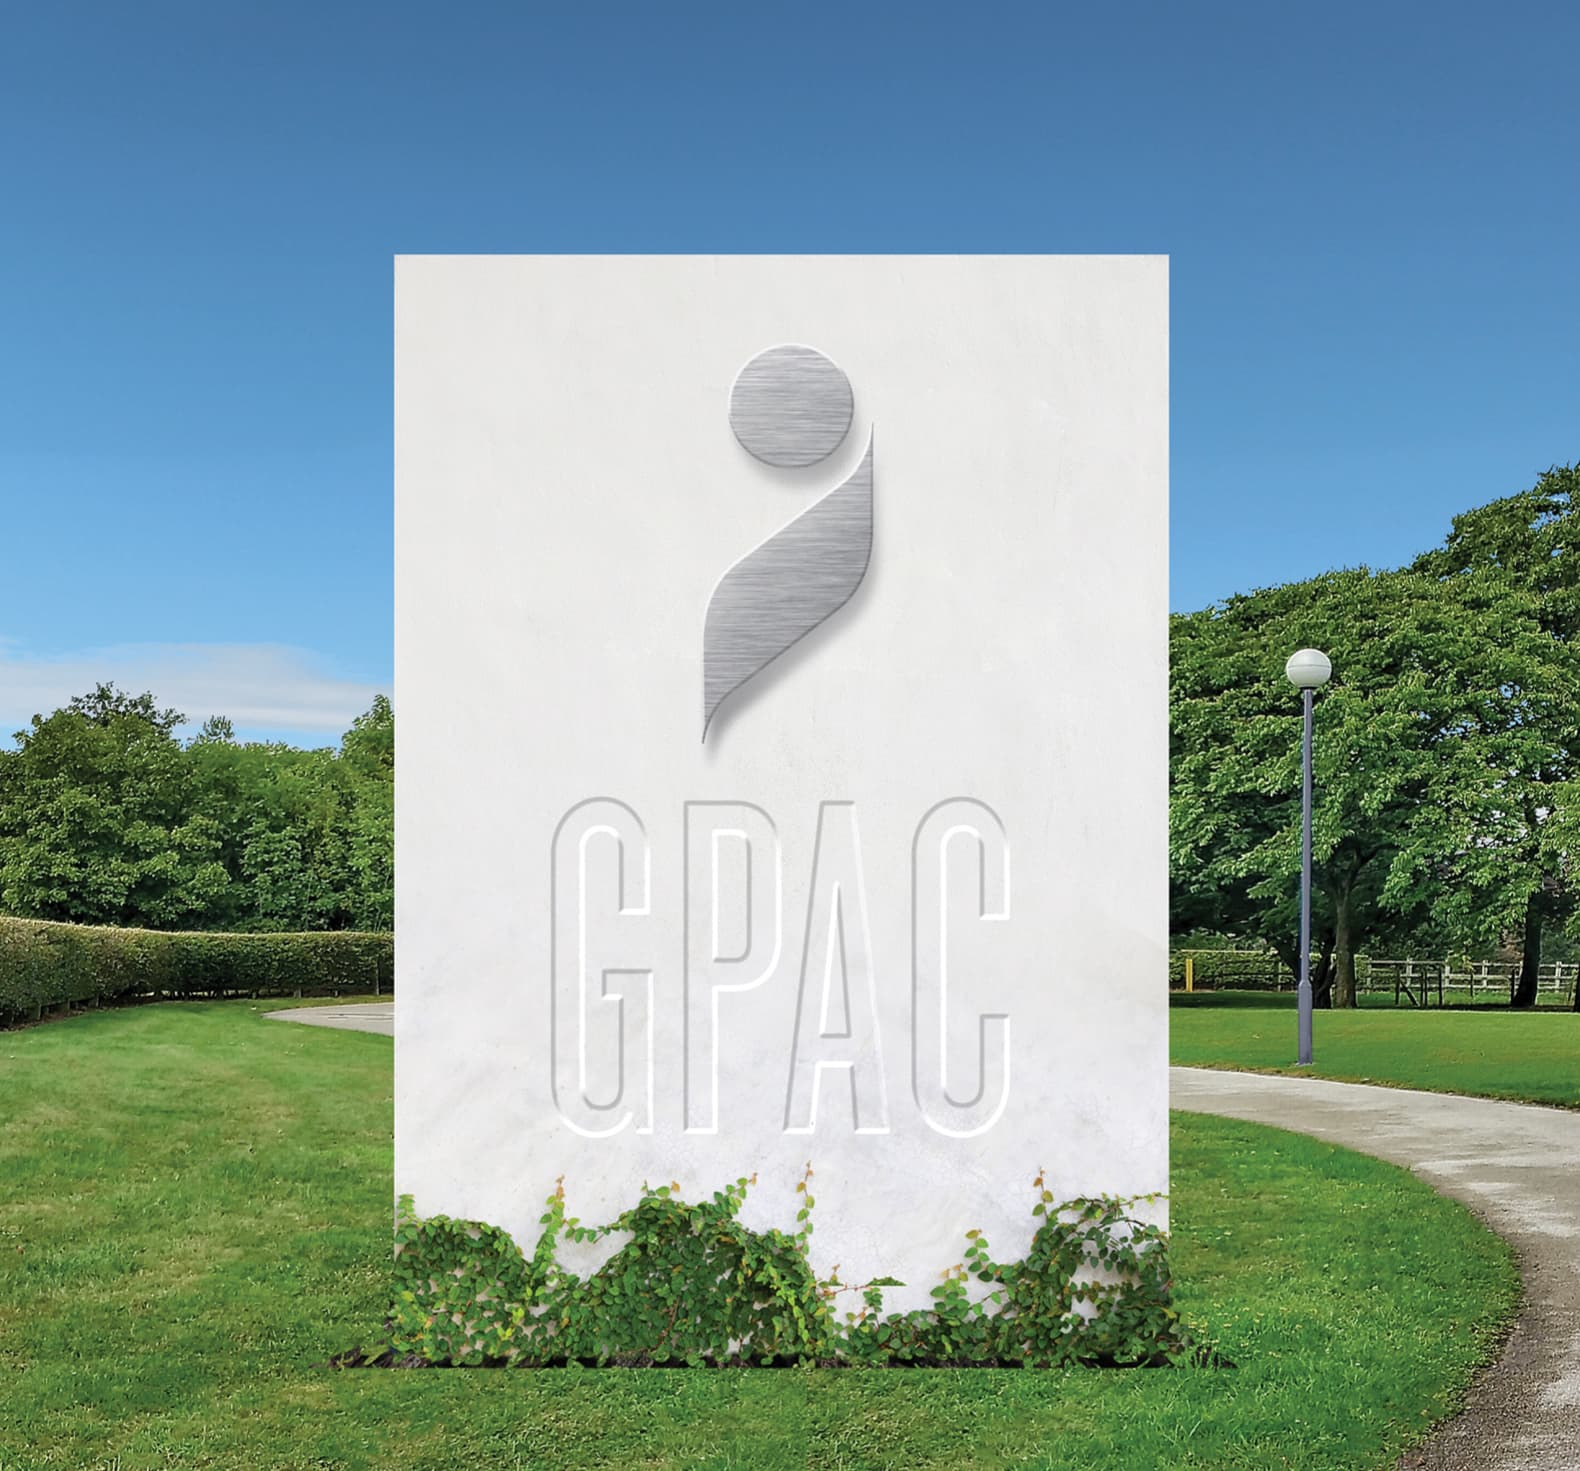 Mockup of exterior signage for GPAC